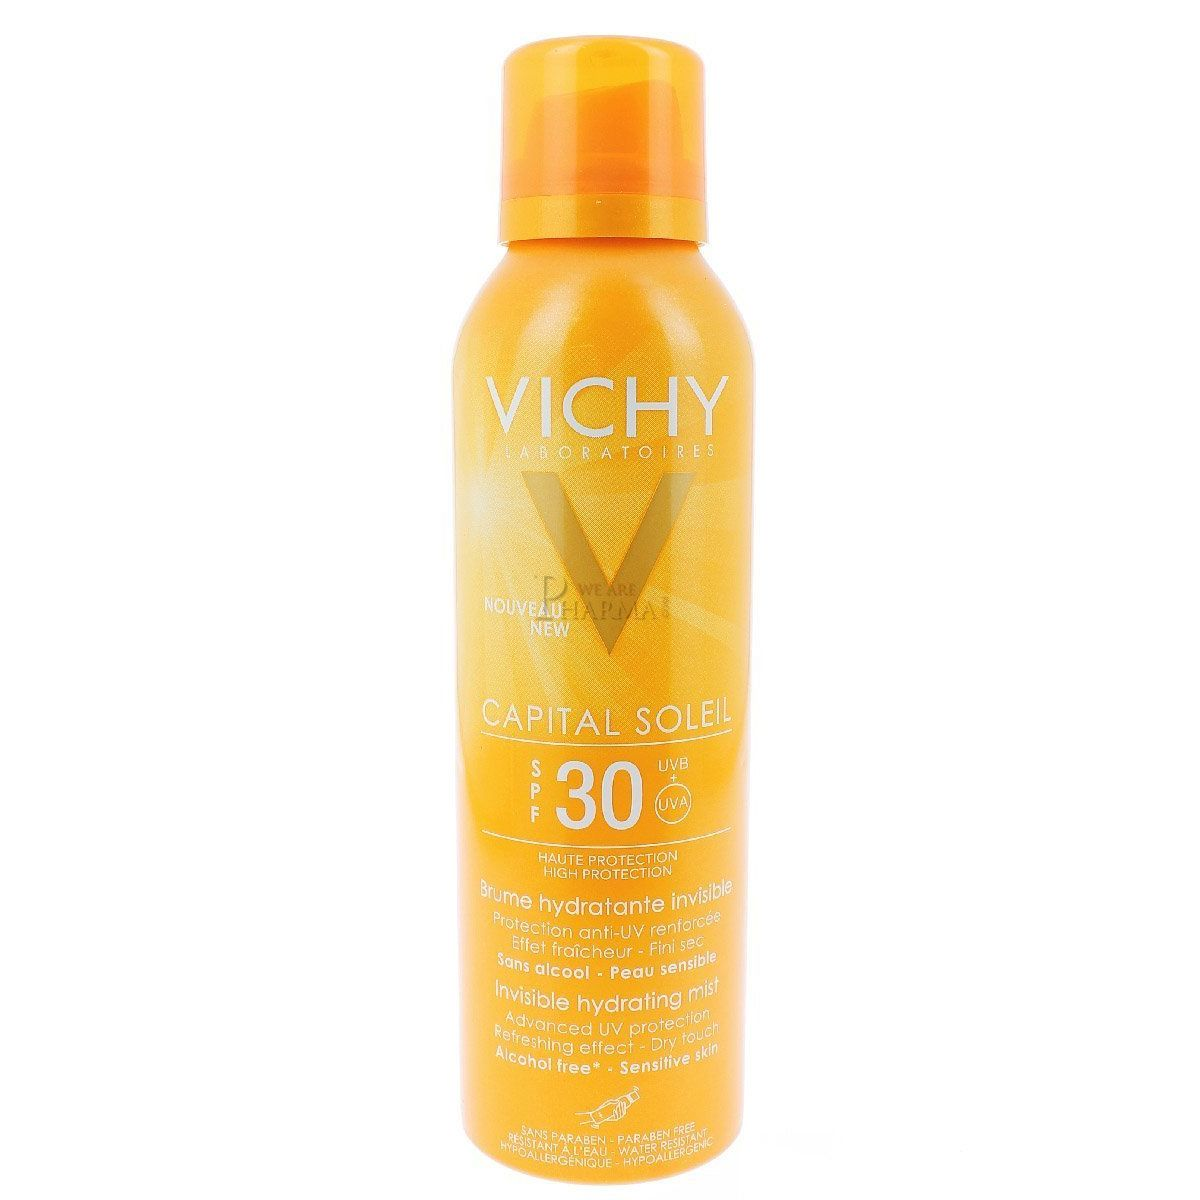 VICHY Spray Solare Capital Soleil Spf30 200 ml